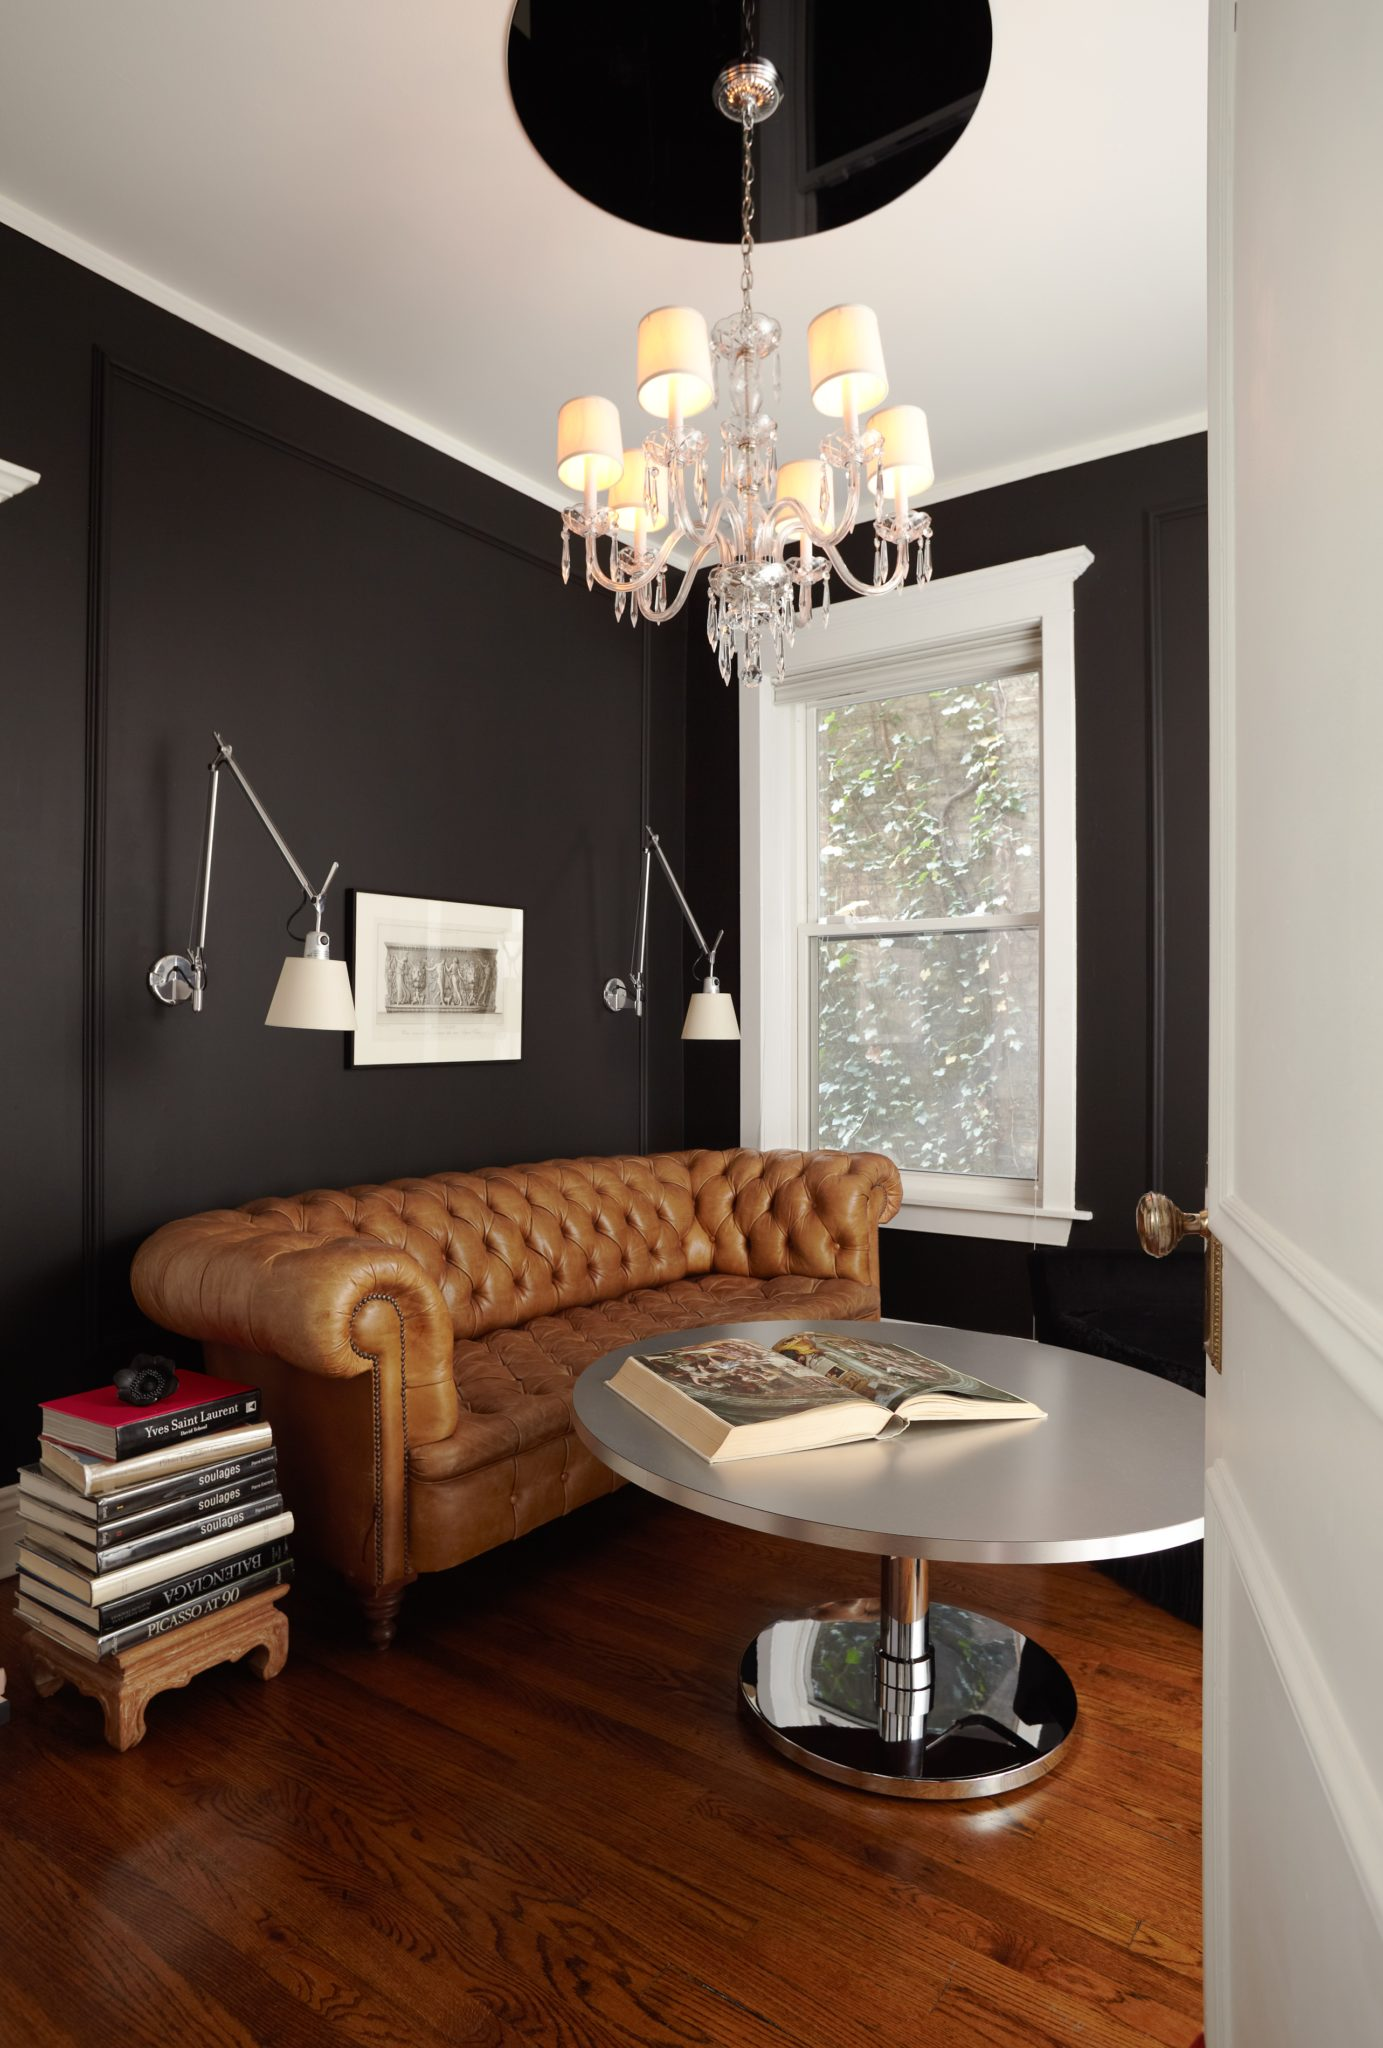 The onyx black den is a reference to French fumeurs, or smoking rooms, and features Donald Sultan prints of smoke rings.